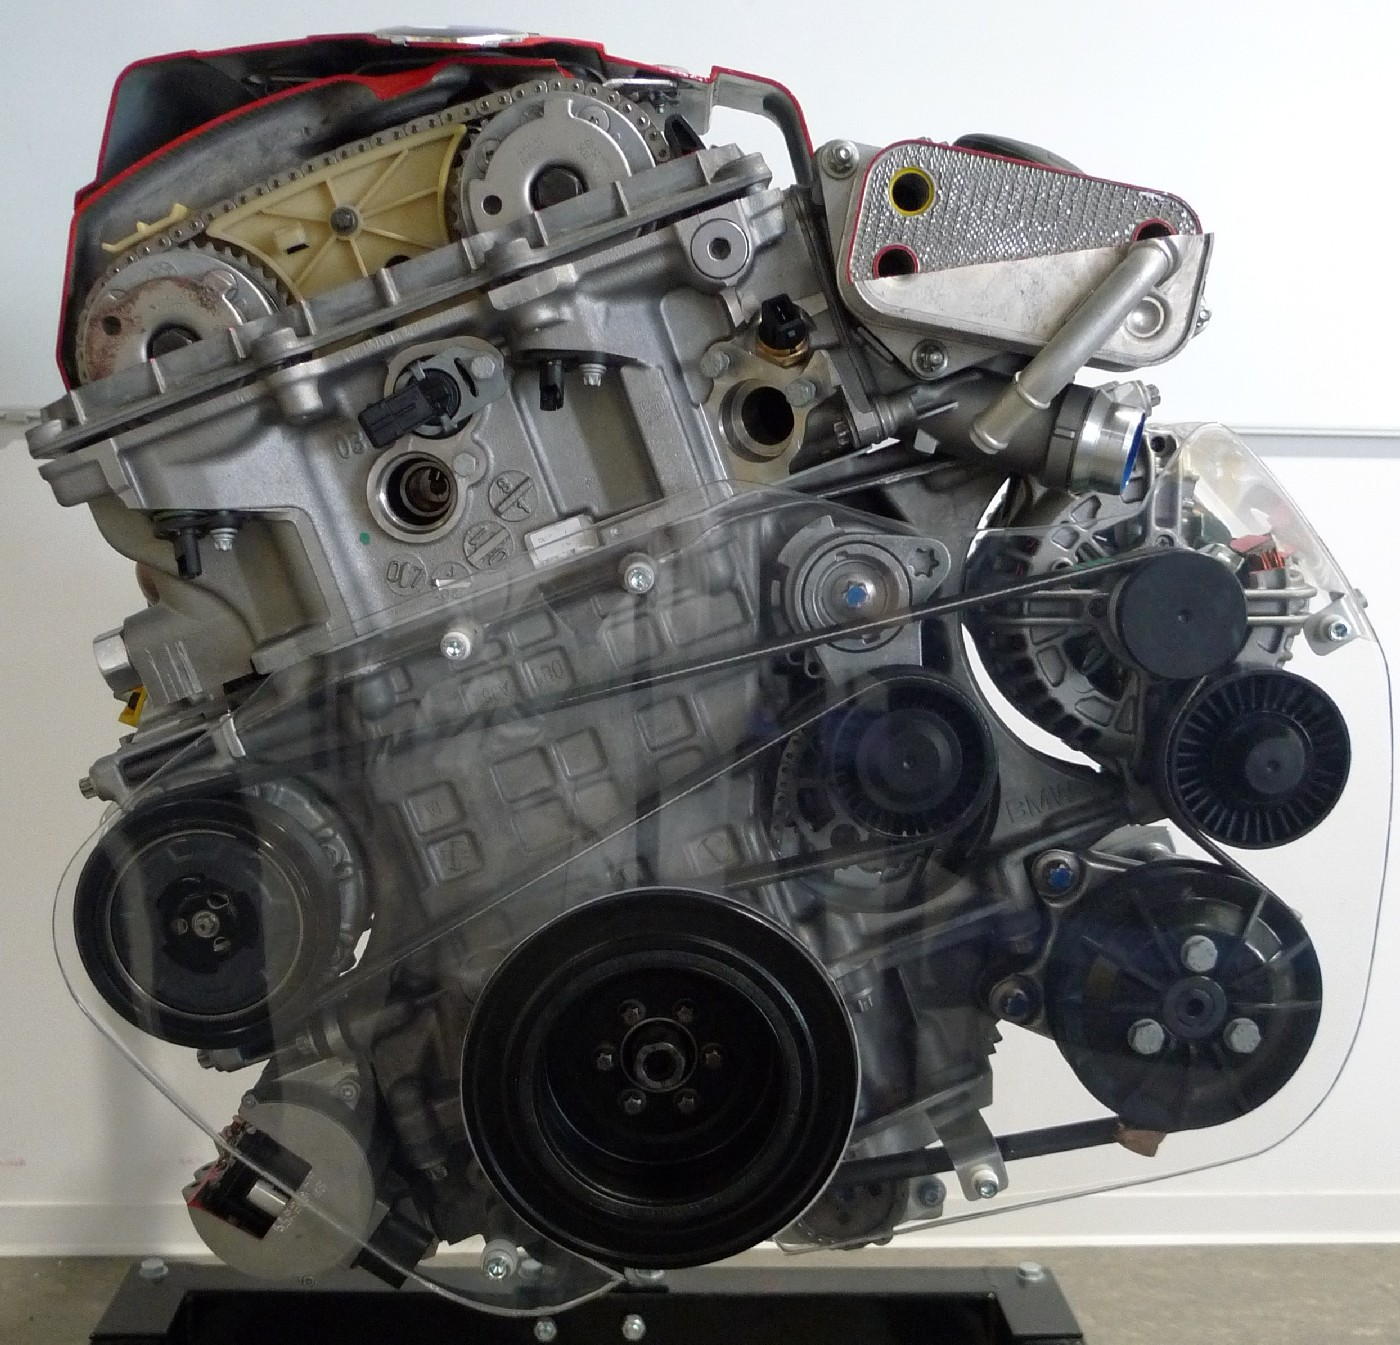 Bmw N52 Wikipedia 2011 328i Xdrive Engine Diagrams Front Of The